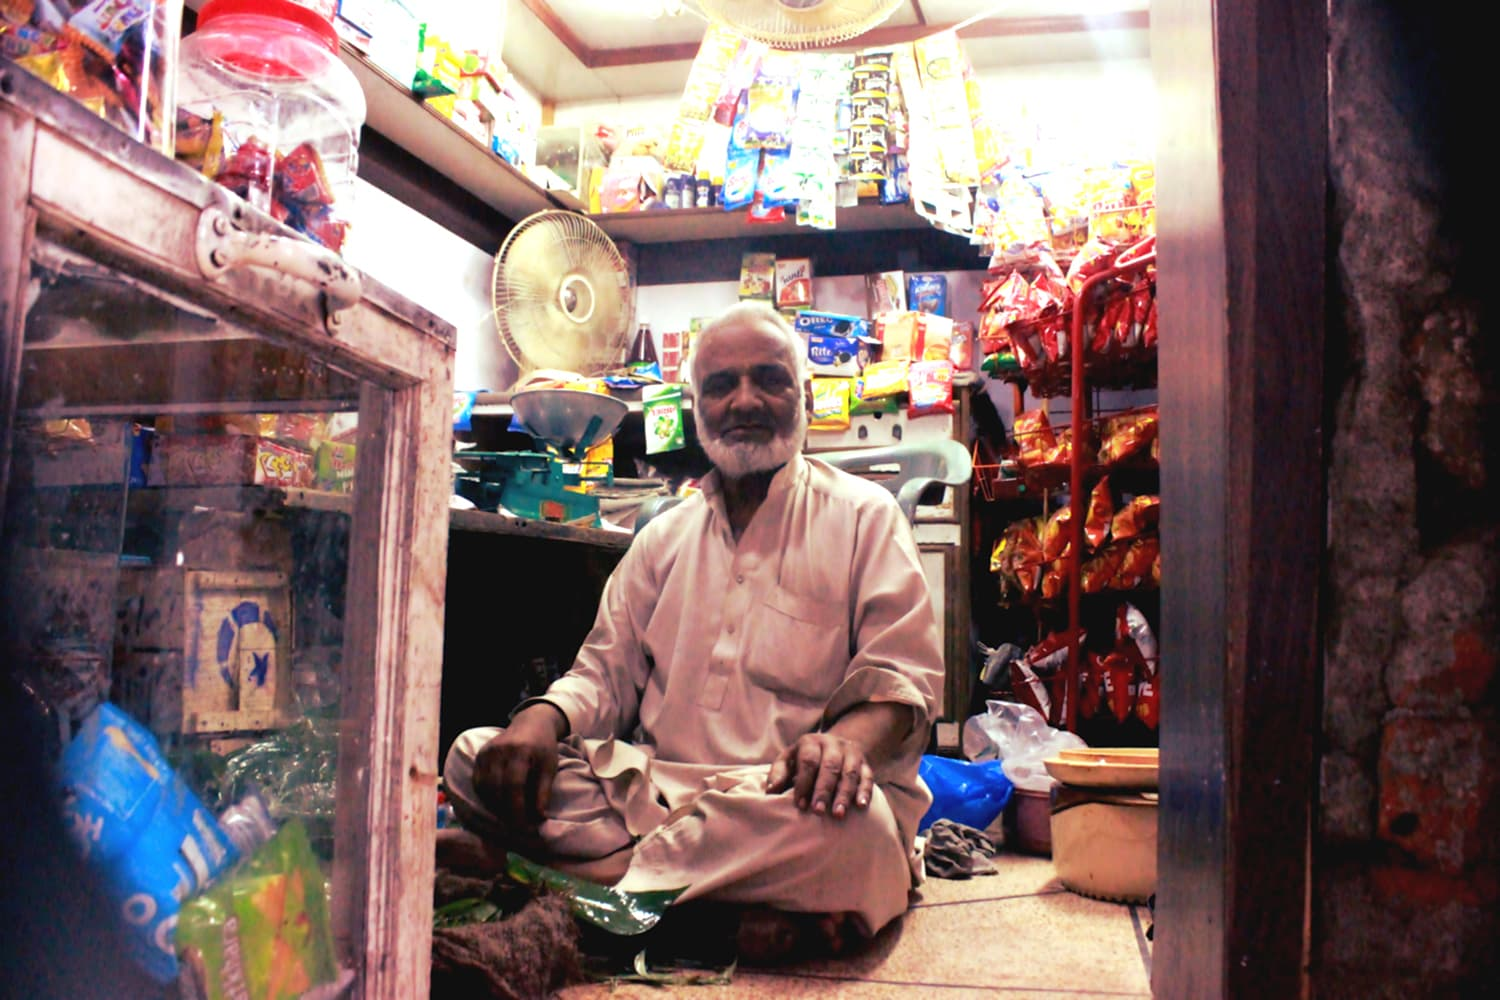 Gulzar Ahmad sitting at his small shop in Saidpuri Mohallah.